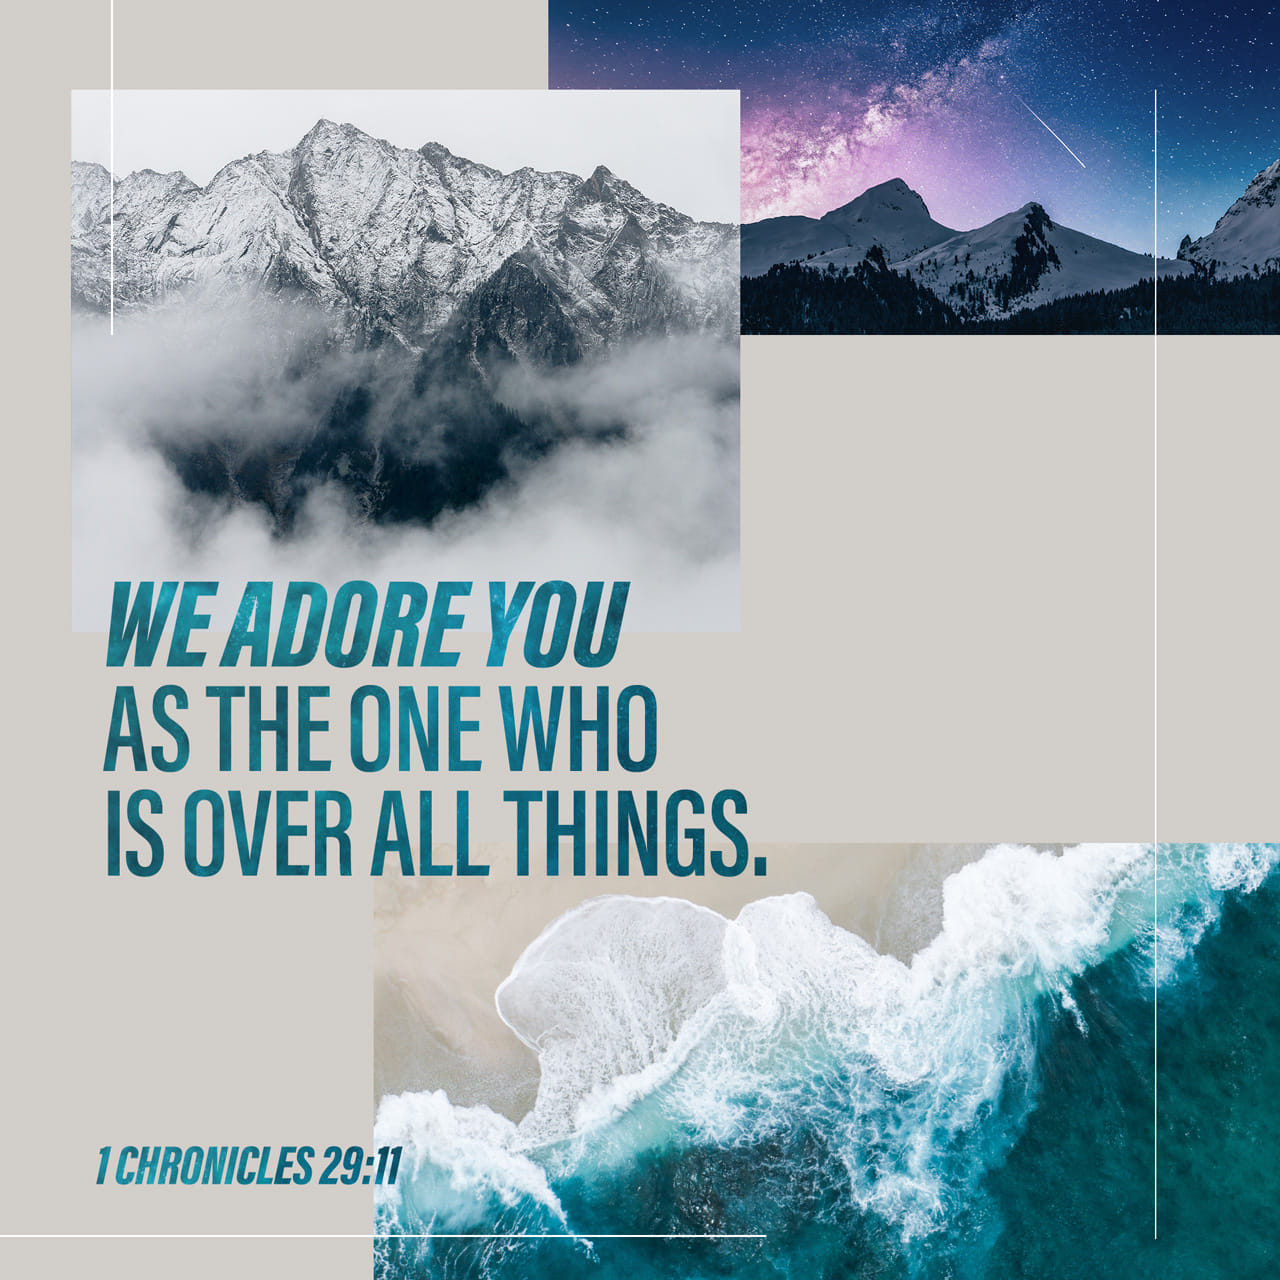 1 Chronicles 29:11 Yours, O LORD, is the greatness, the power, the glory, the victory, and the majesty. Everything in the heavens and on earth is yours, O LORD, and this is your kingdom. We adore you as the one who is o | New Living Translation (NLT)